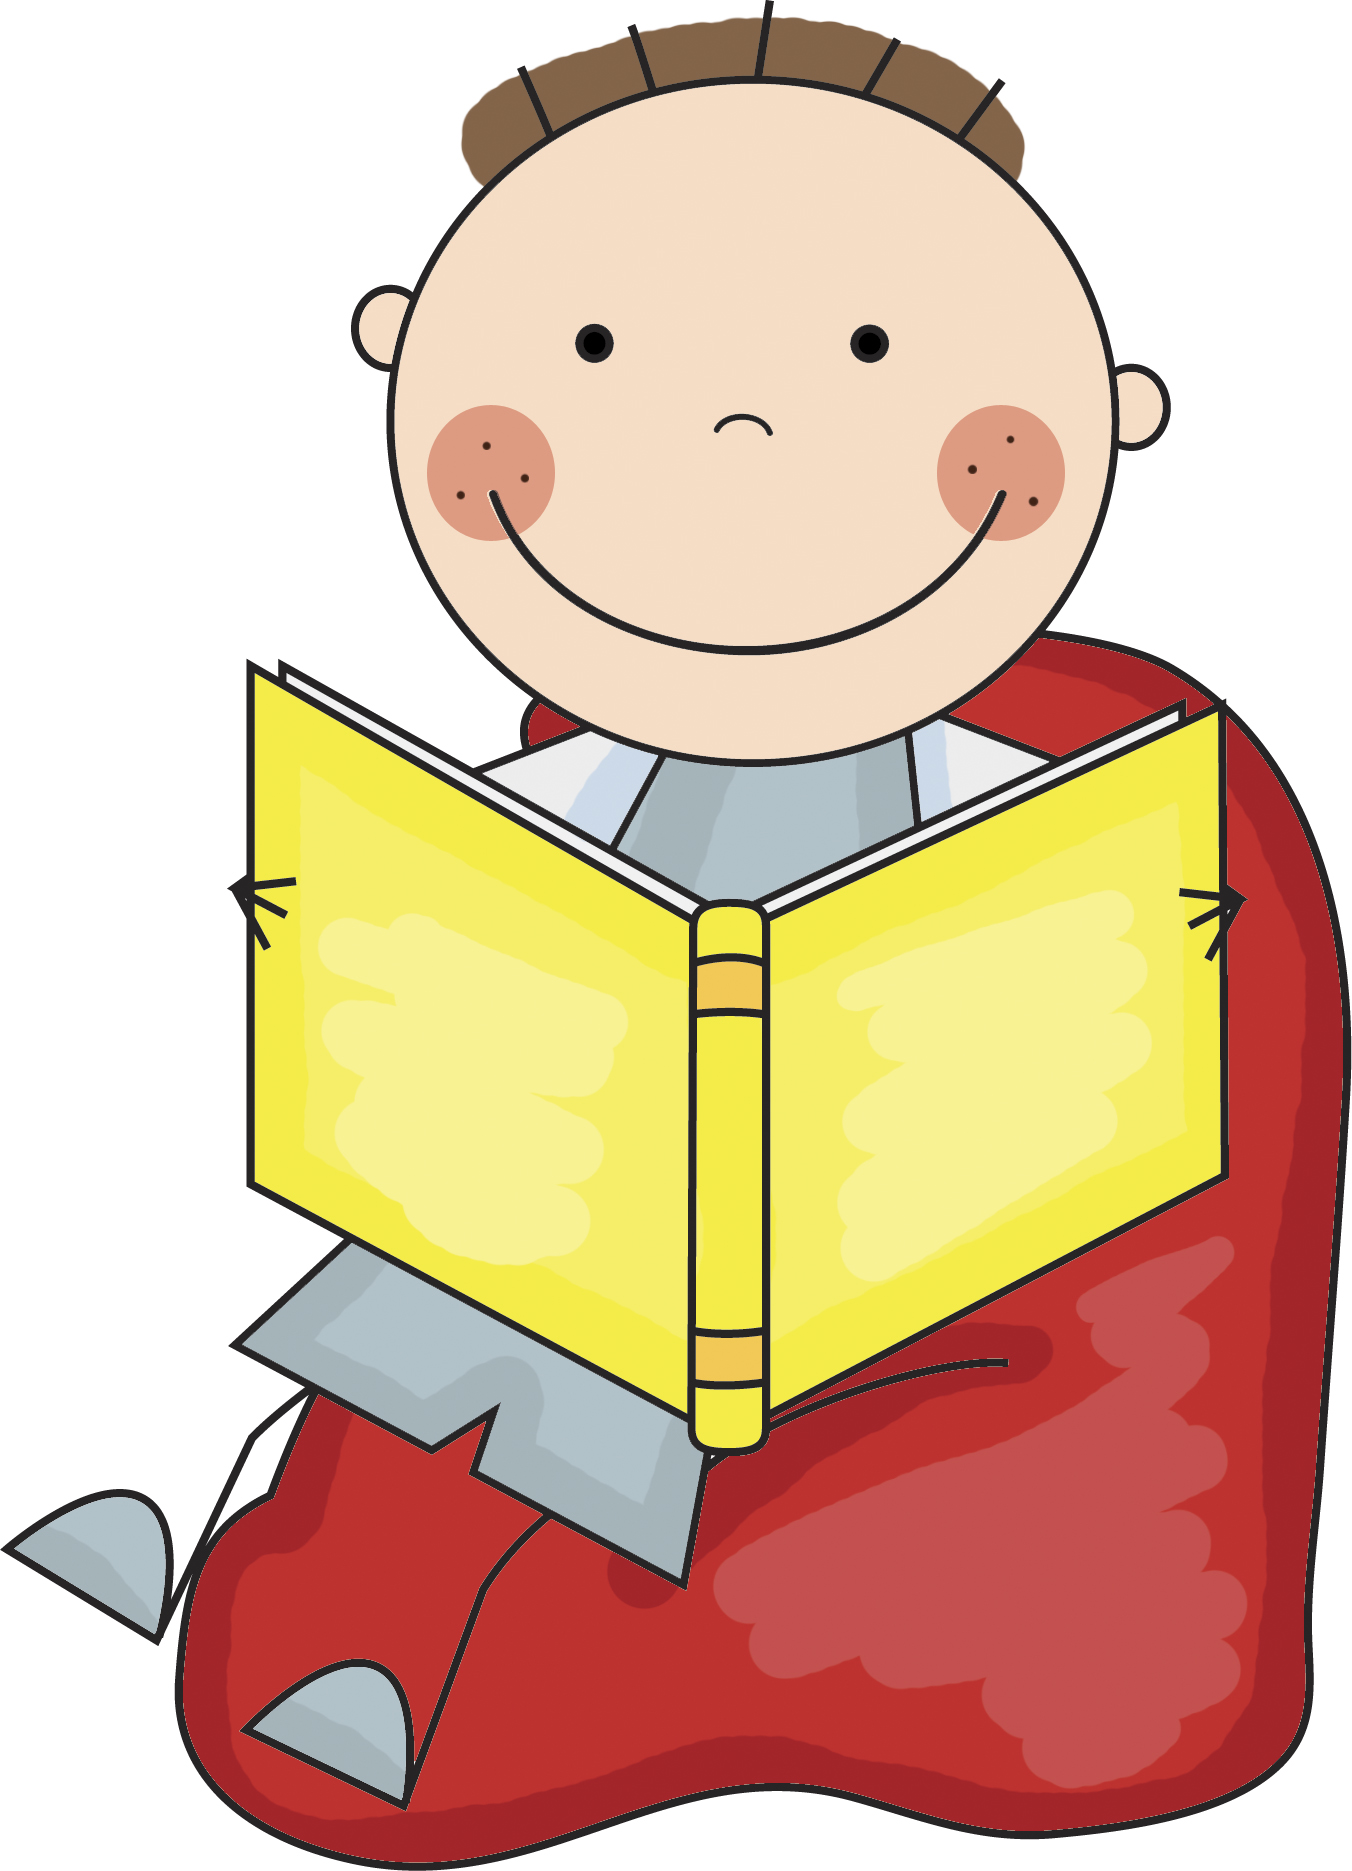 Reading a book in bed clipart png download Boy Reading In Bed Clipart - Clipart Kid png download